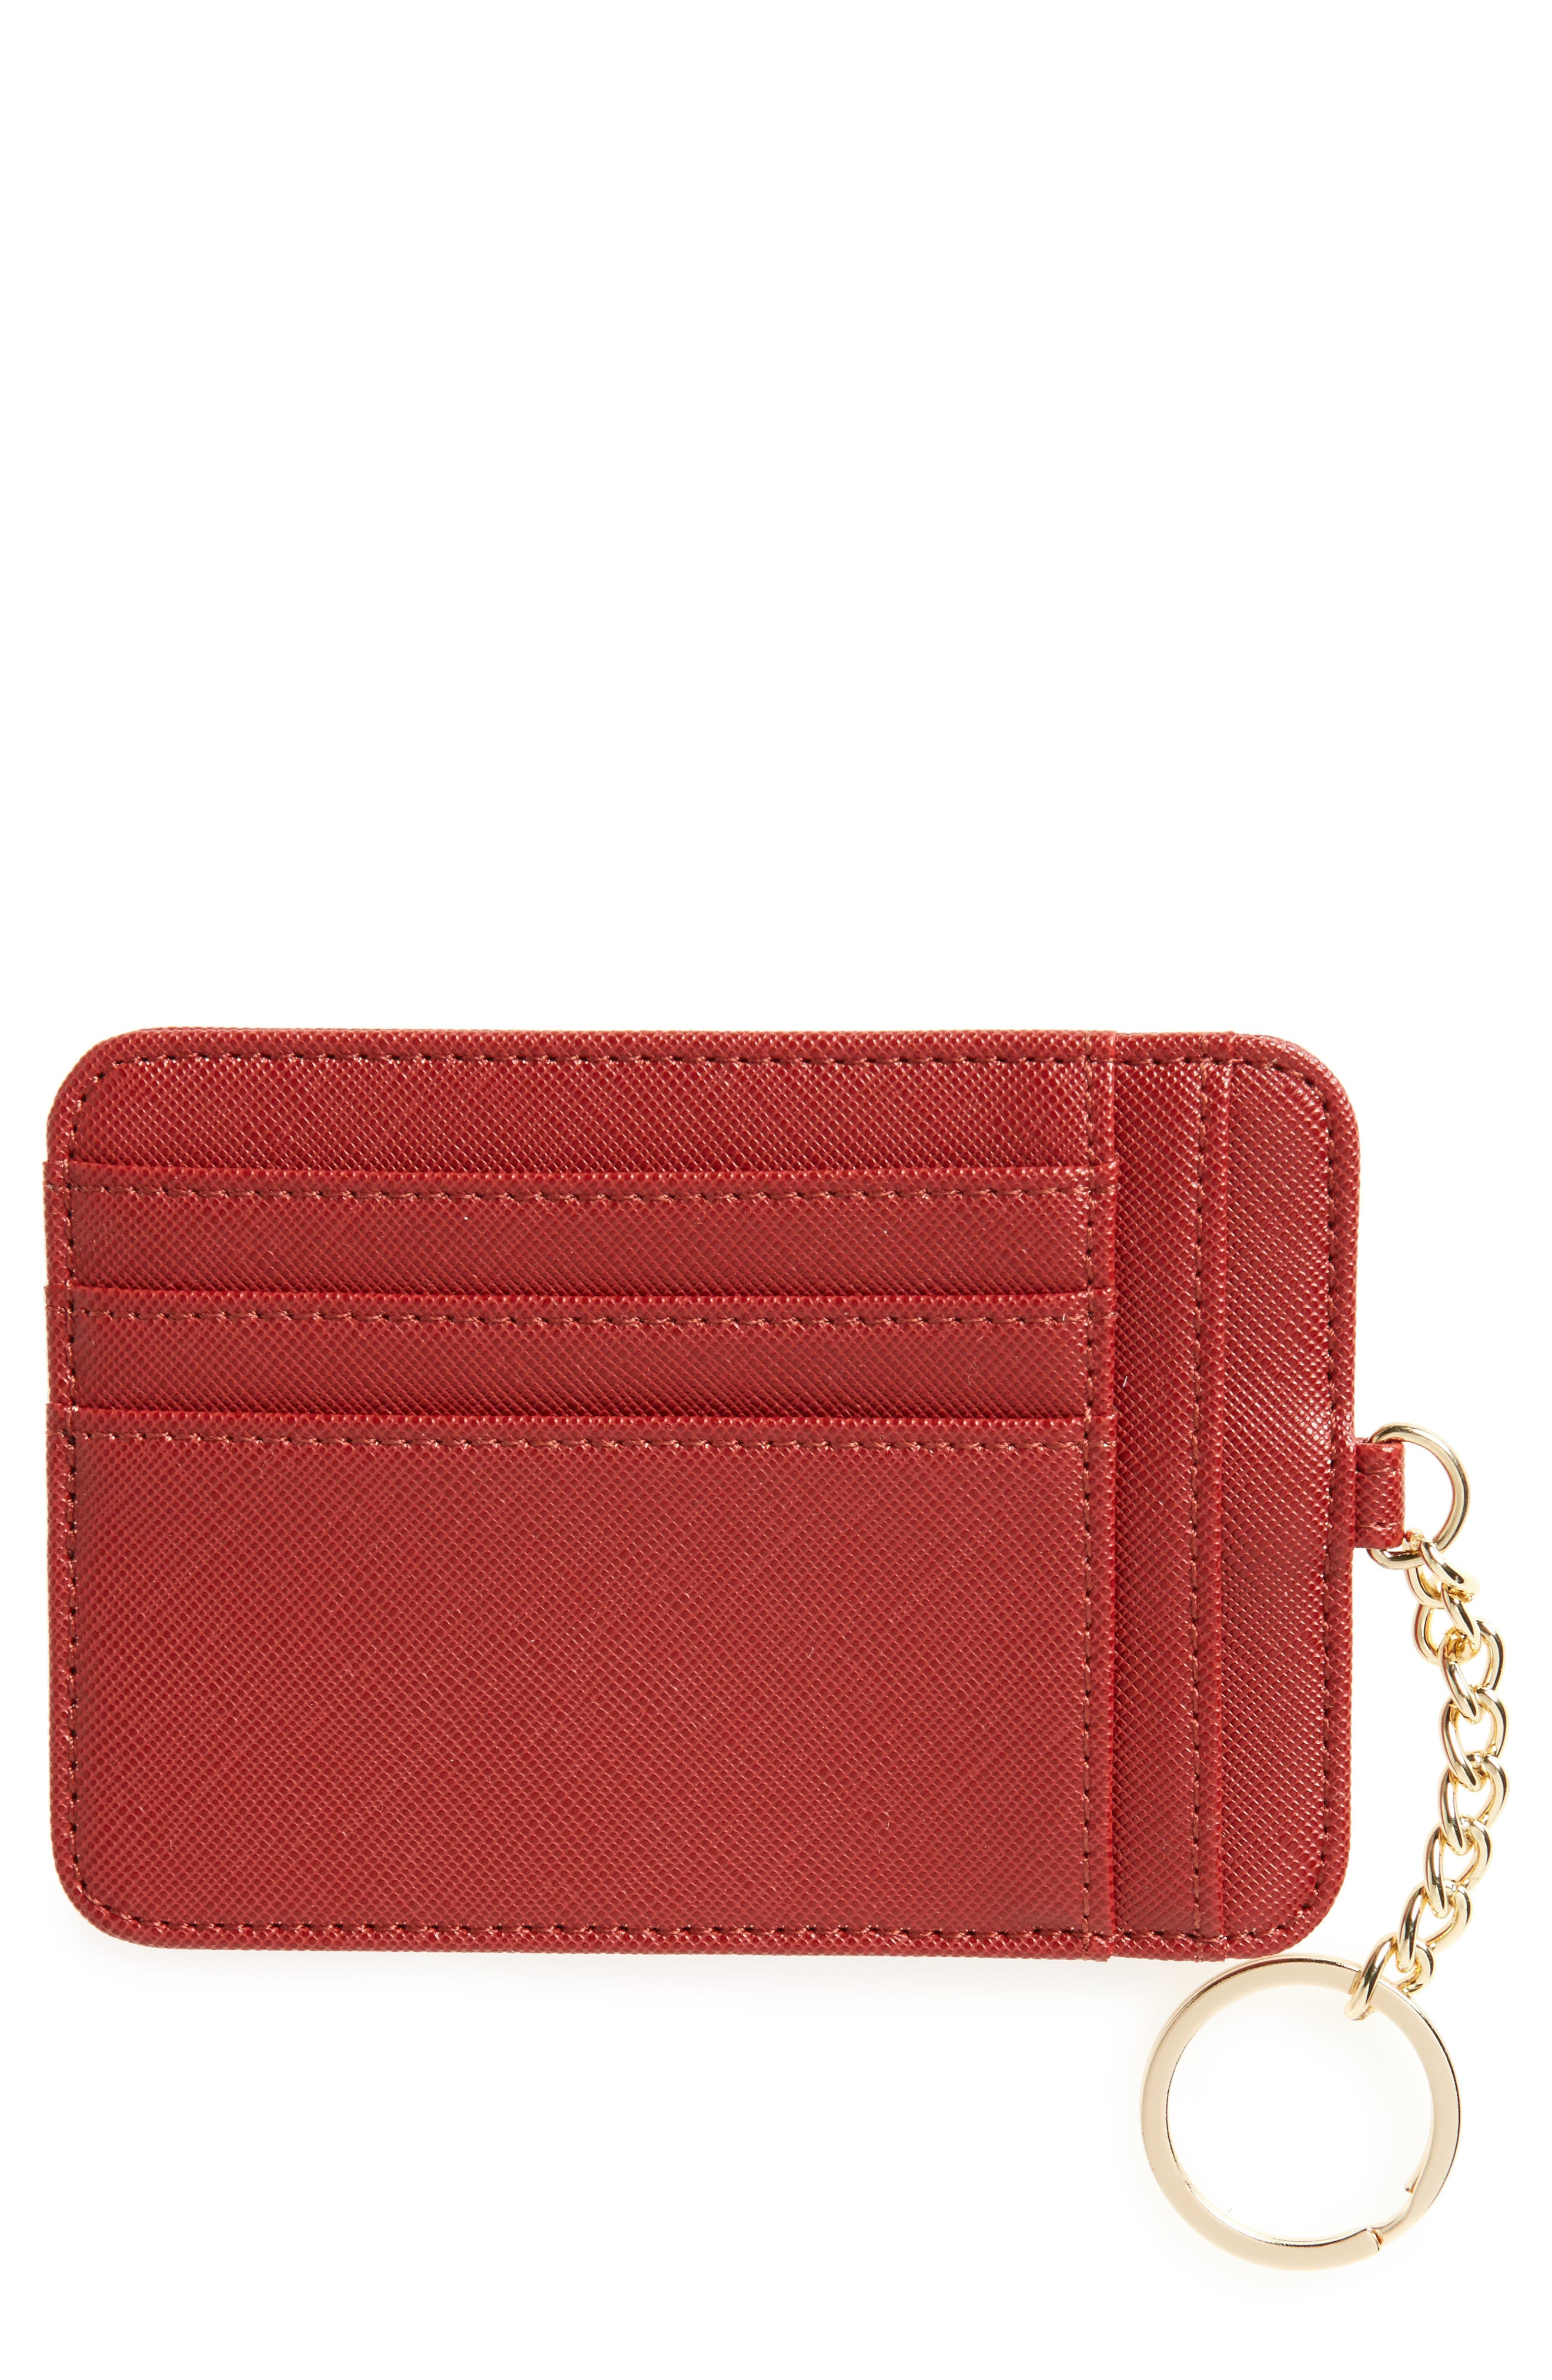 Main Image - BP. Faux Leather Zip Key Chain Card Case